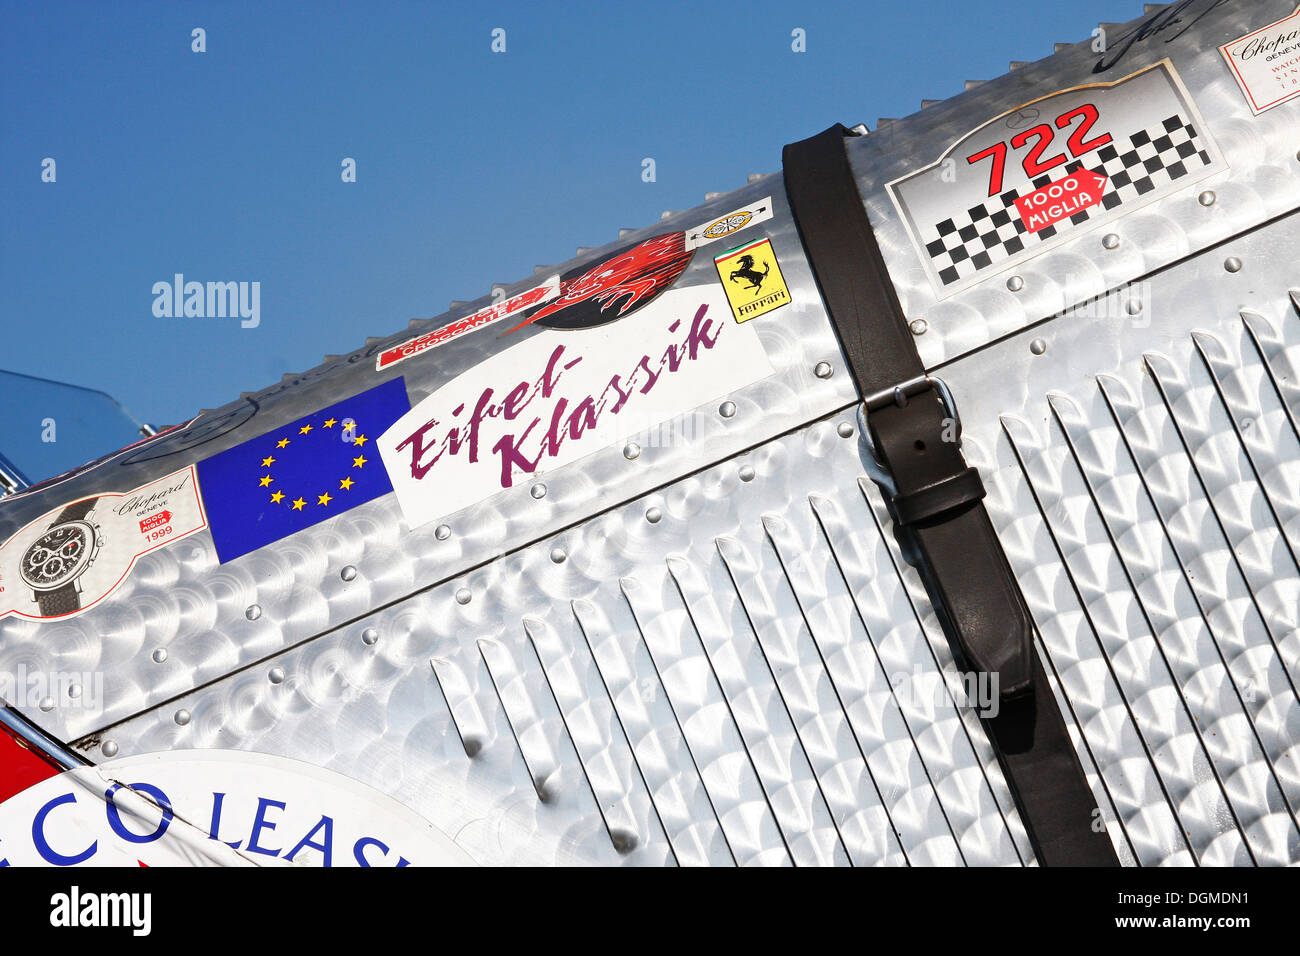 Hood of a Mercedes-Benz SSK, rarity, Eifelrennen 2009 race, Nurburgring race track, Rhineland-Palatinate - Stock Image